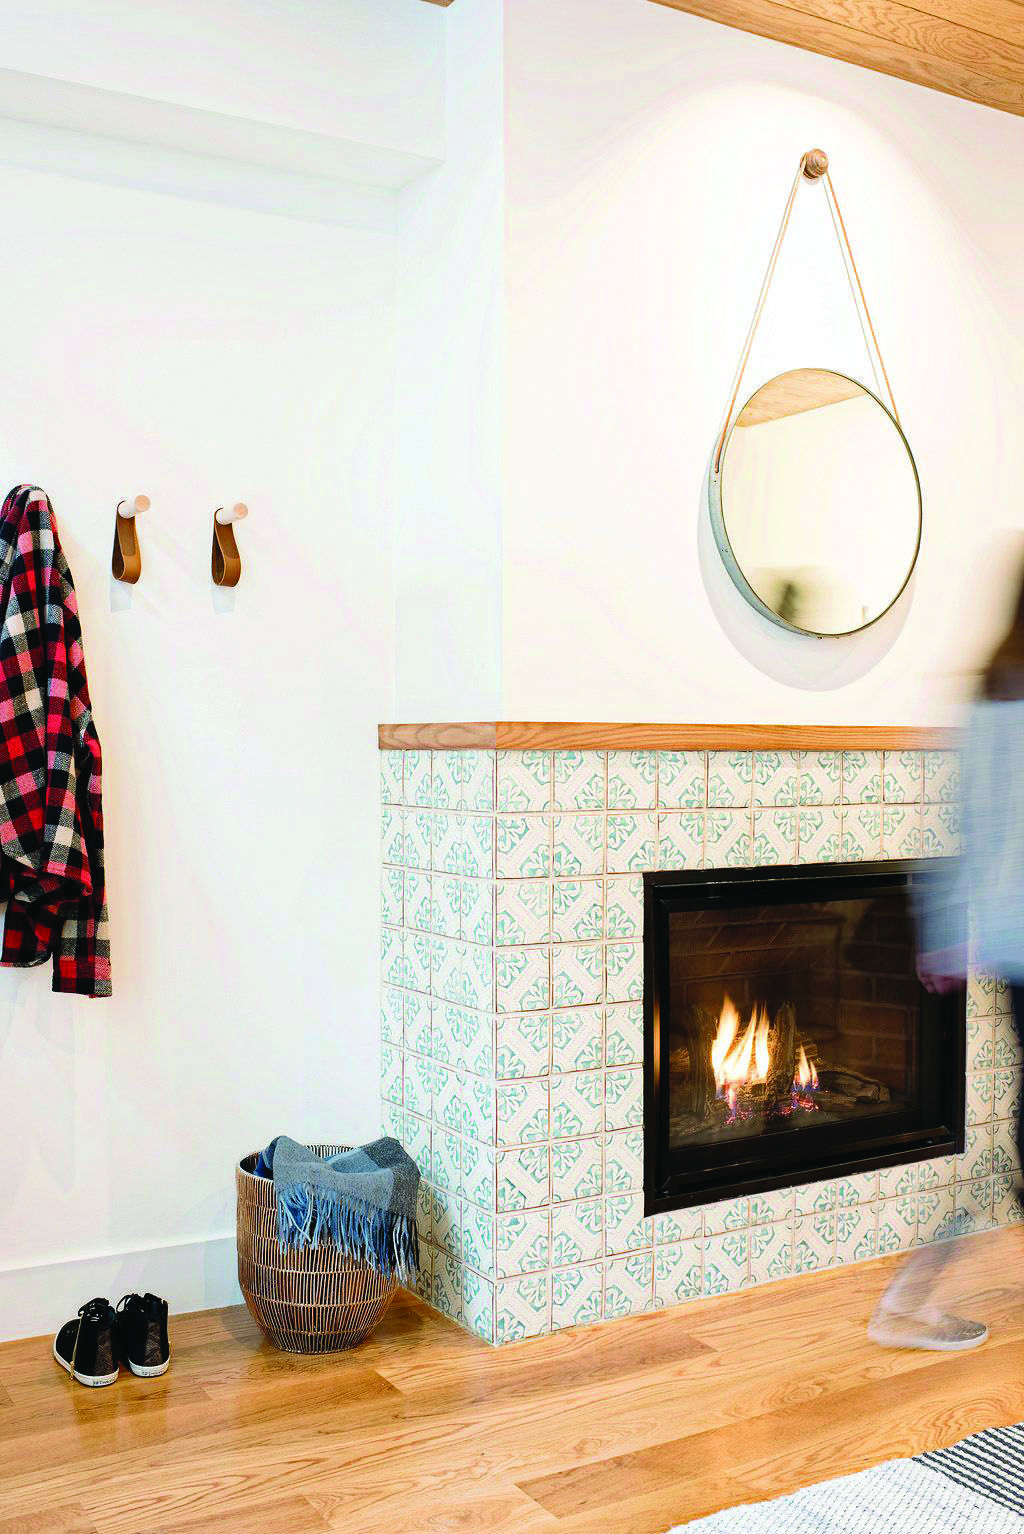 how to clean fireplace glass while hot